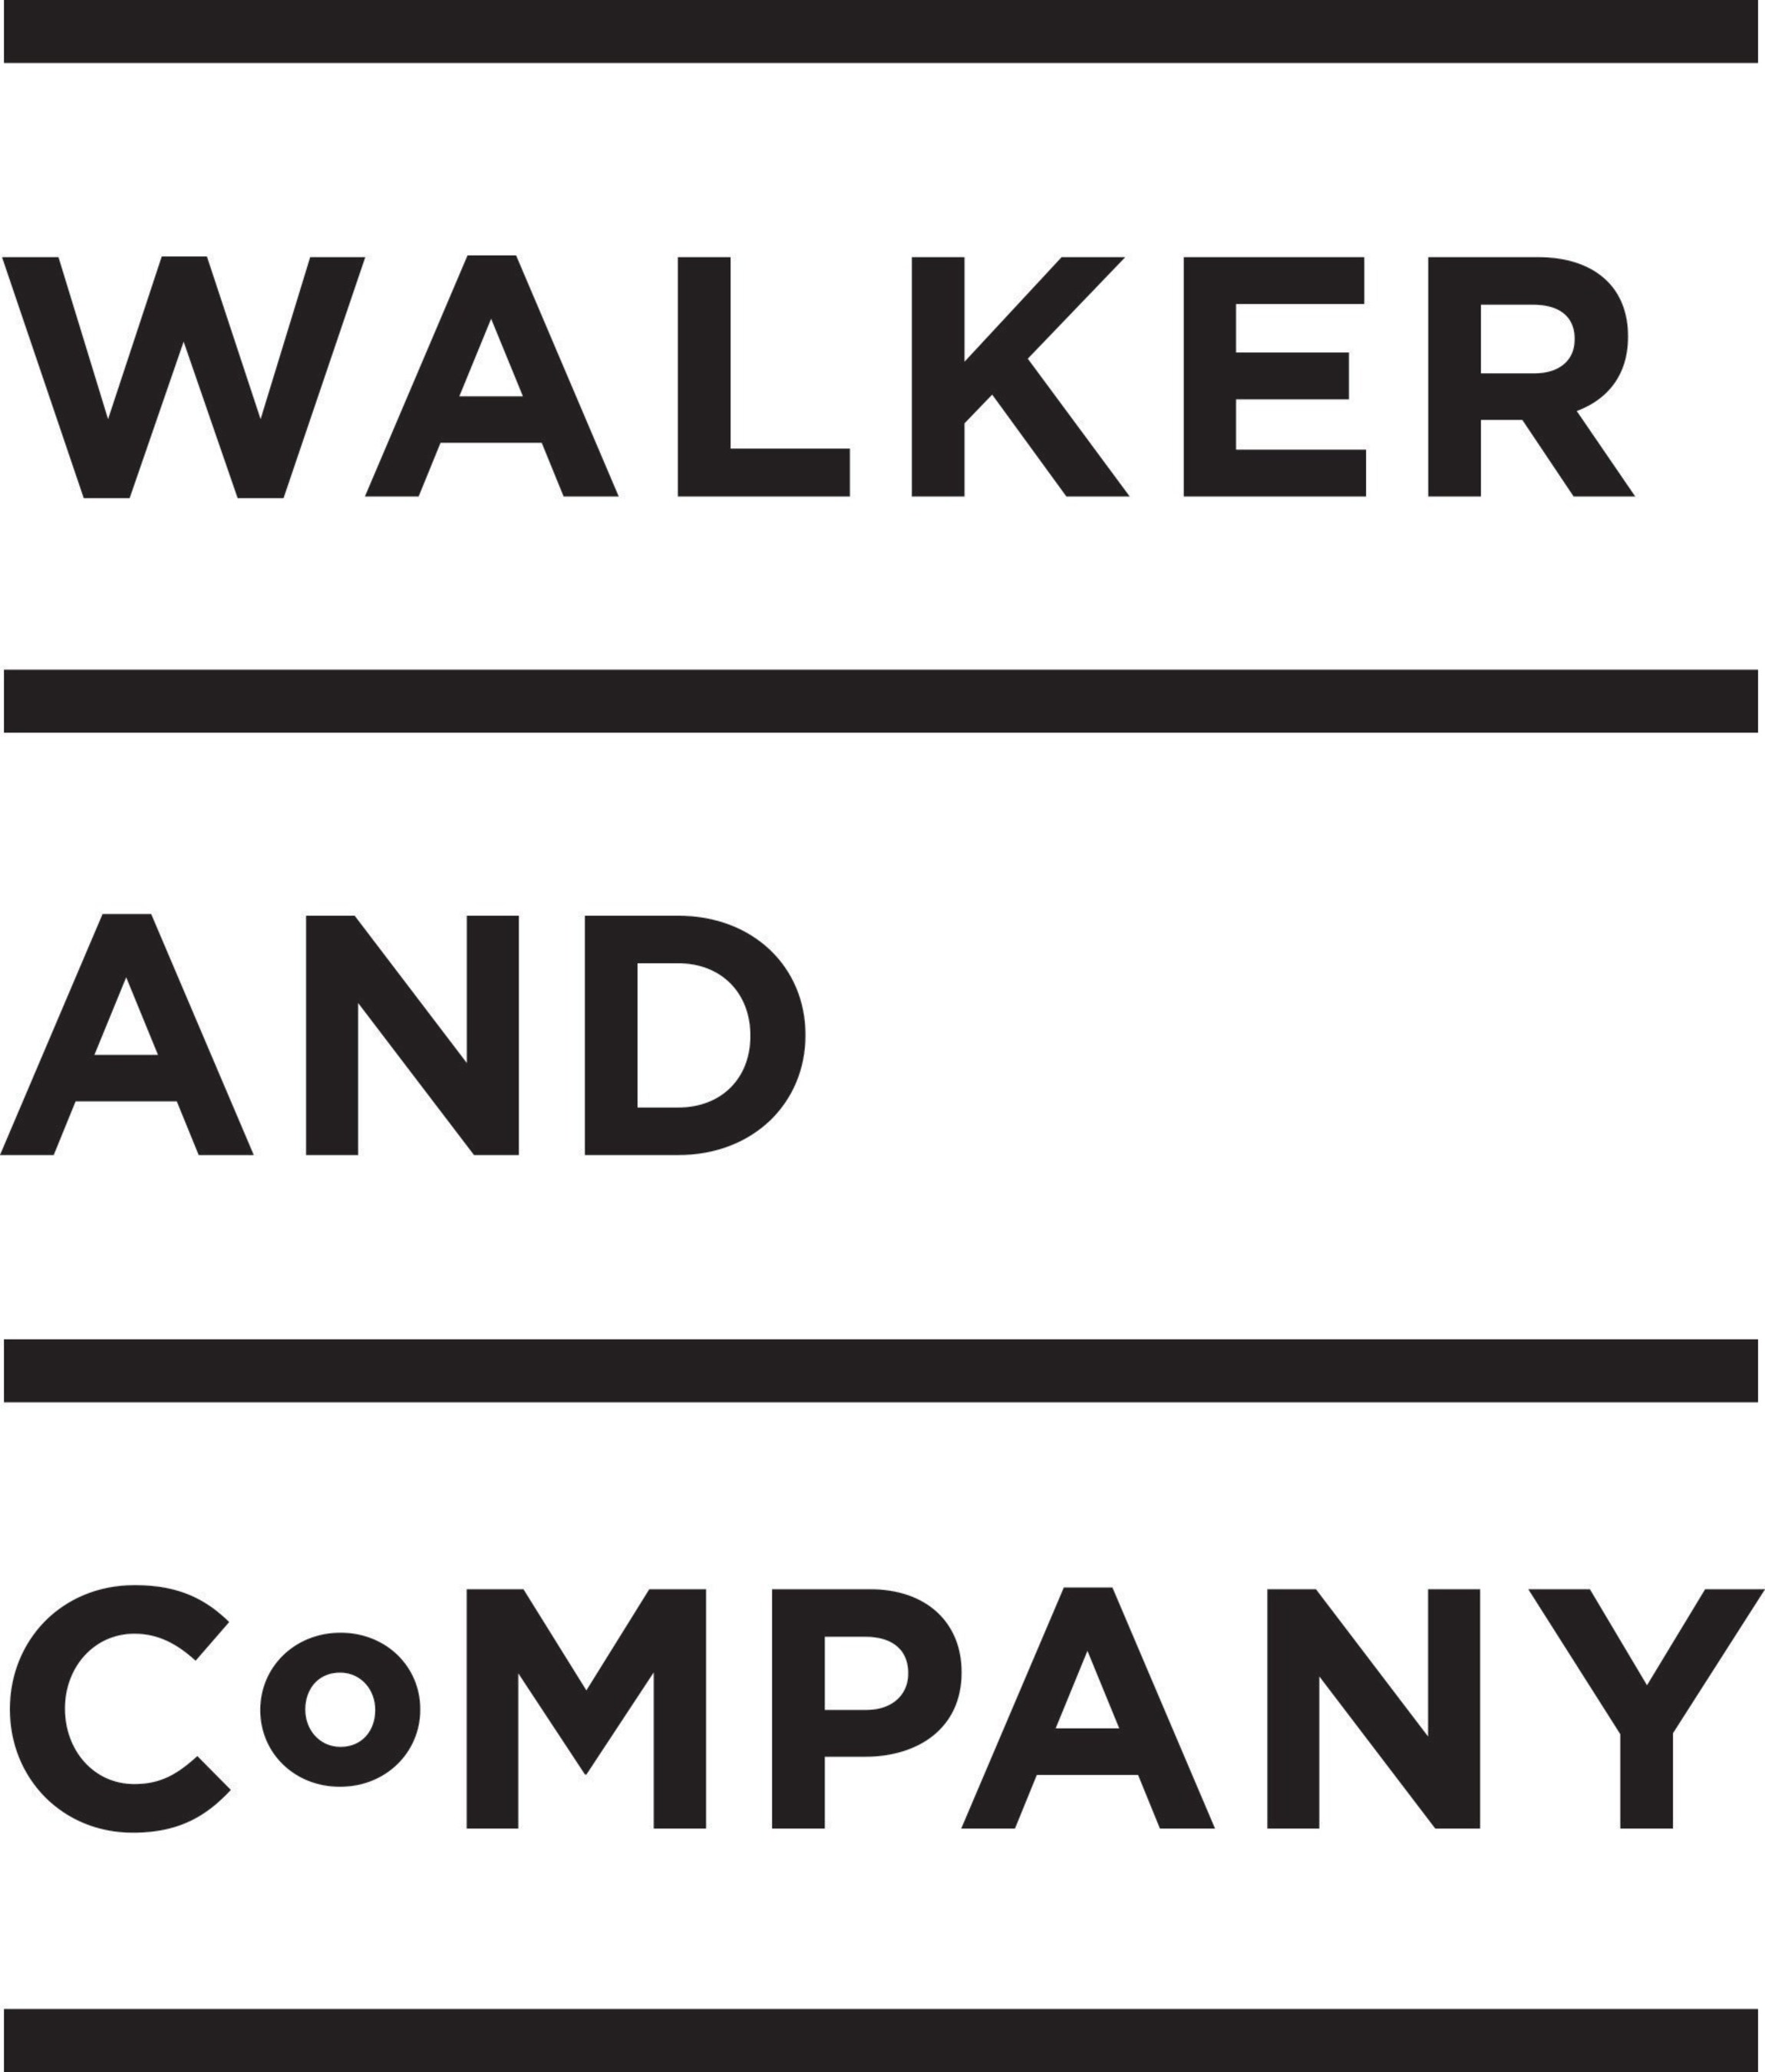 "walker and company ""walker companies has been essential in the delivery of goods to our clients across the nation – and several times, the worldi absolutely feel confident in recommending walker companies' services."